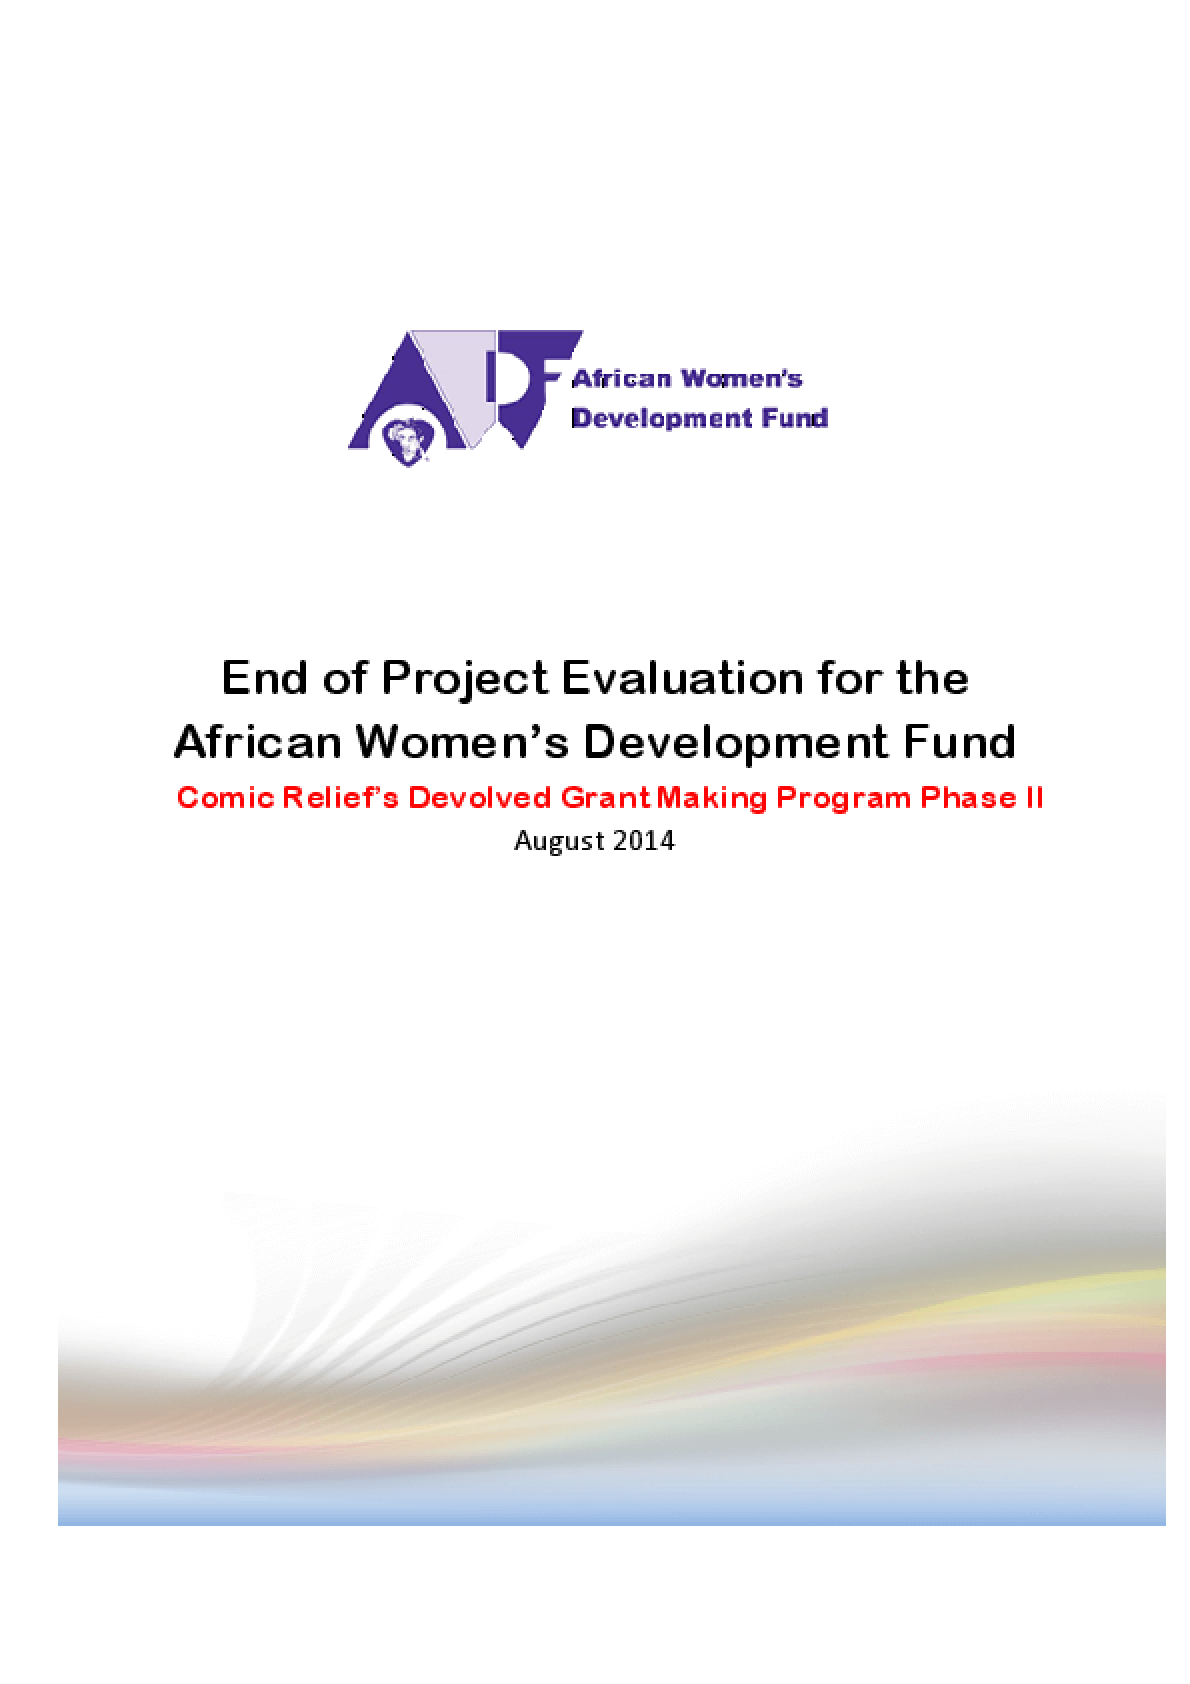 End of Project Evaluation for the African Women's Development Fund Comic Relief's Devolved Grant Making Program Phase II